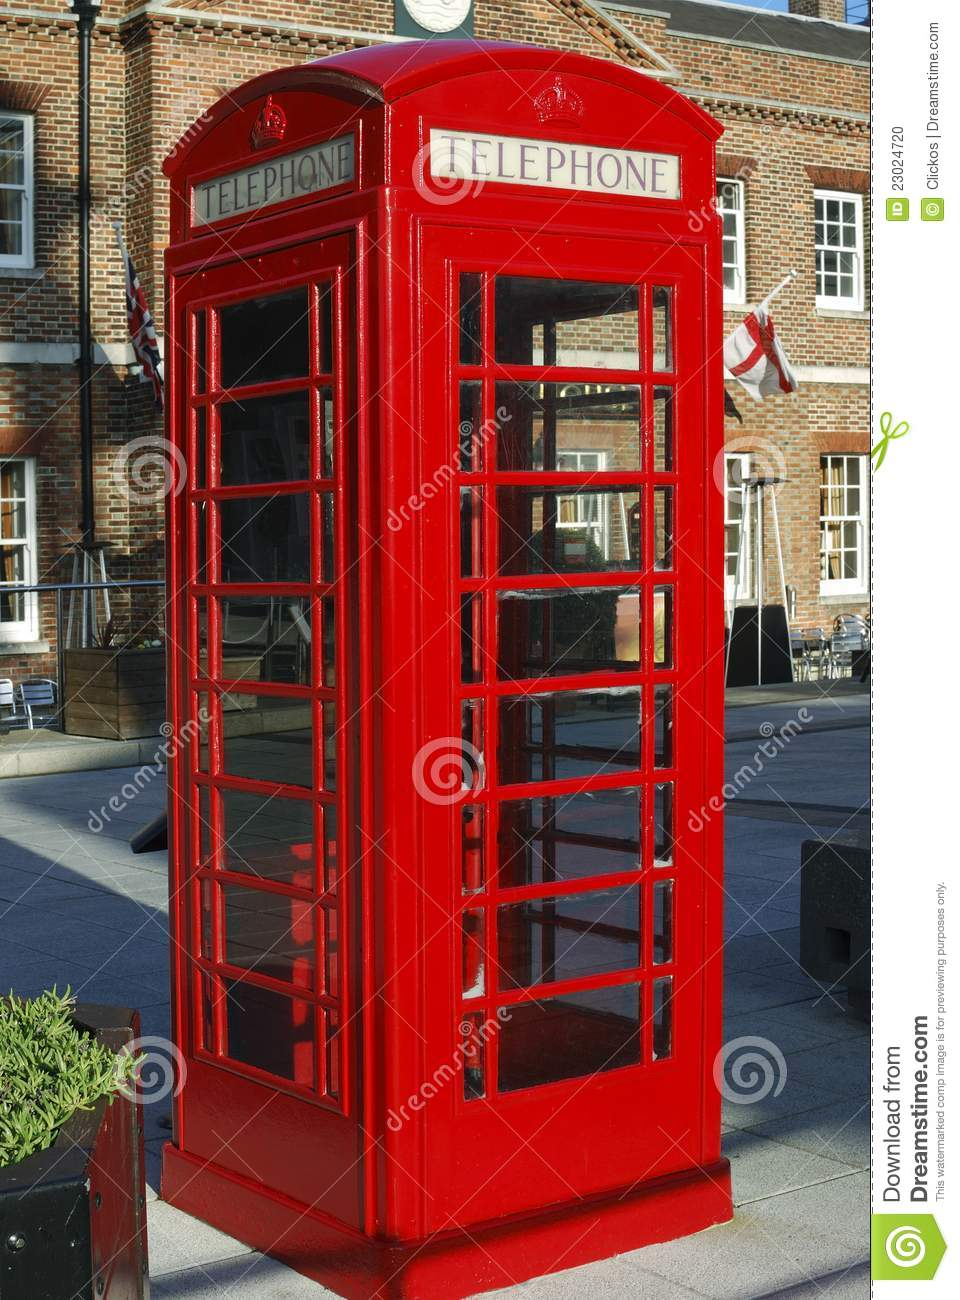 Cabine t l phonique rouge anglaise photo stock image 23024720 - Cabine telephonique a vendre ...